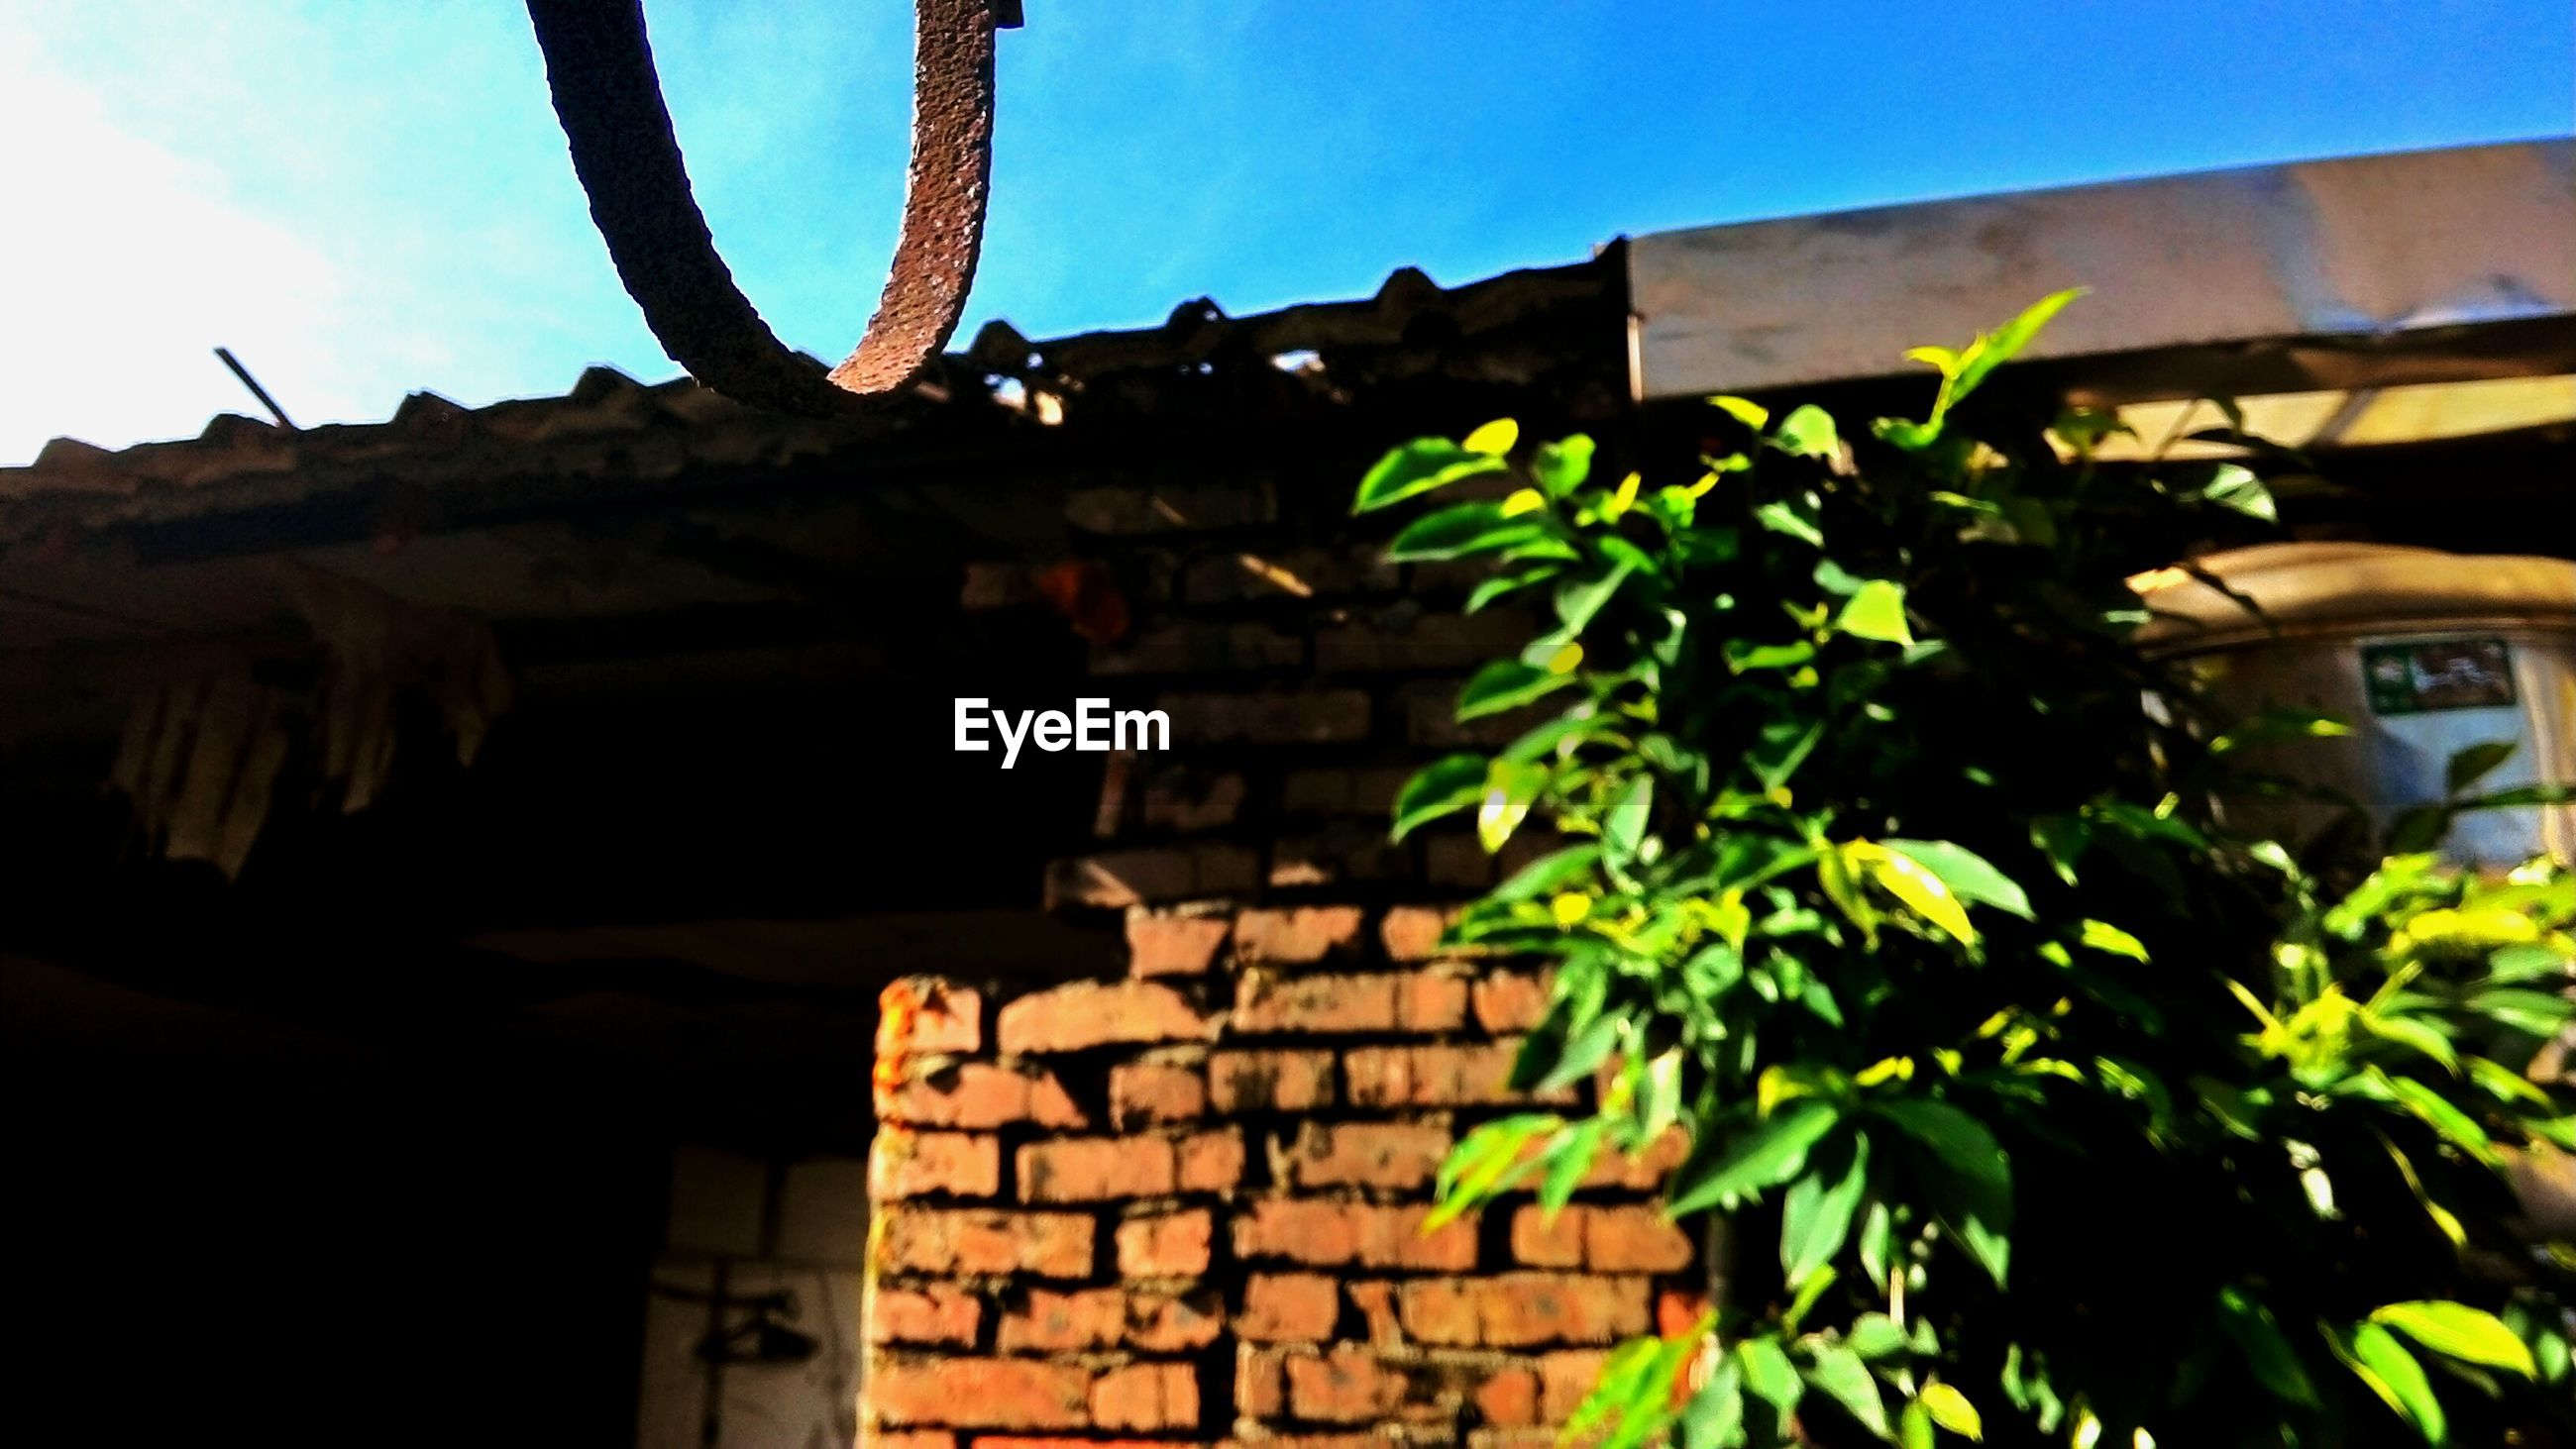 building exterior, architecture, built structure, house, low angle view, old, residential structure, plant, growth, sky, residential building, abandoned, sunlight, outdoors, no people, stone wall, day, building, wall - building feature, tree